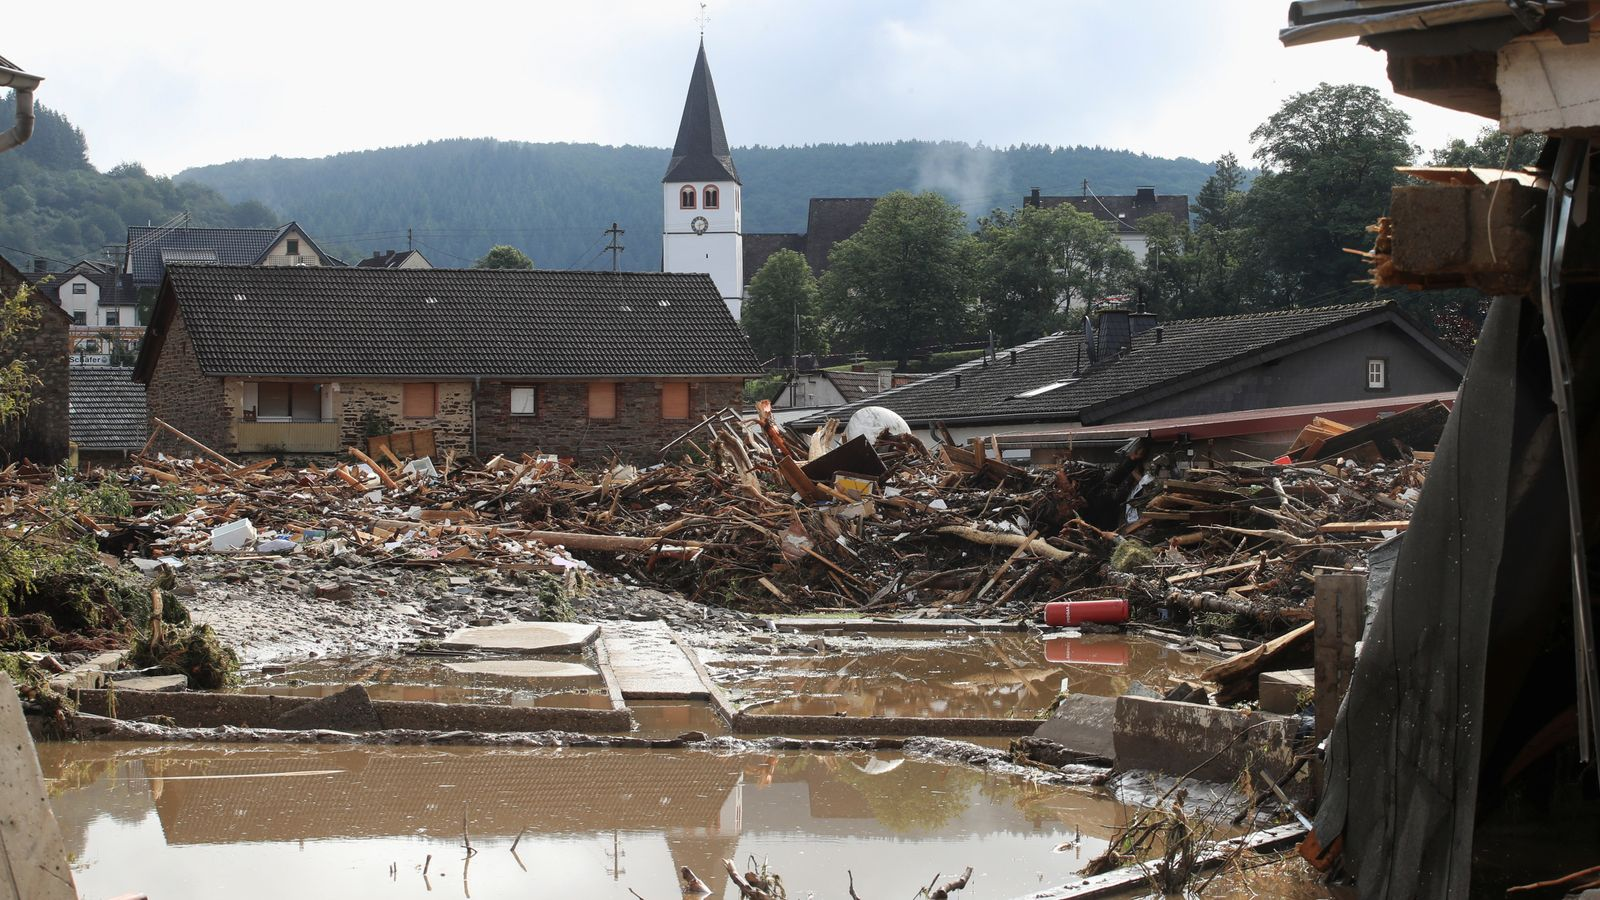 Germany and Belgium floods: Fears death toll will rise as officials warn dam could burst